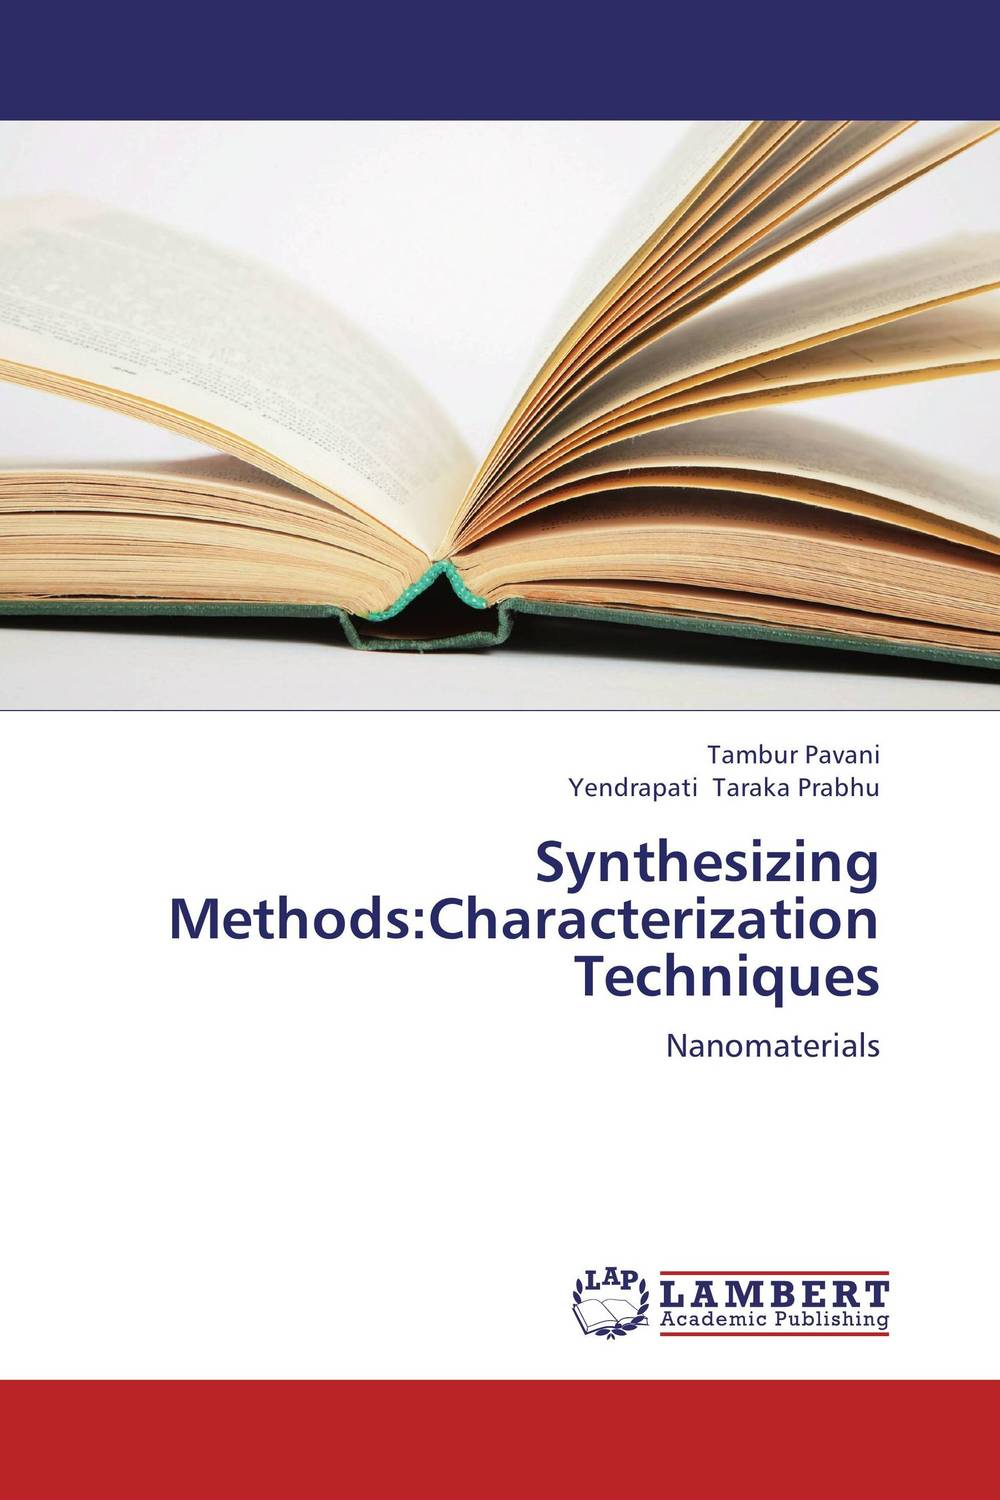 Synthesizing Methods:Characterization Techniques